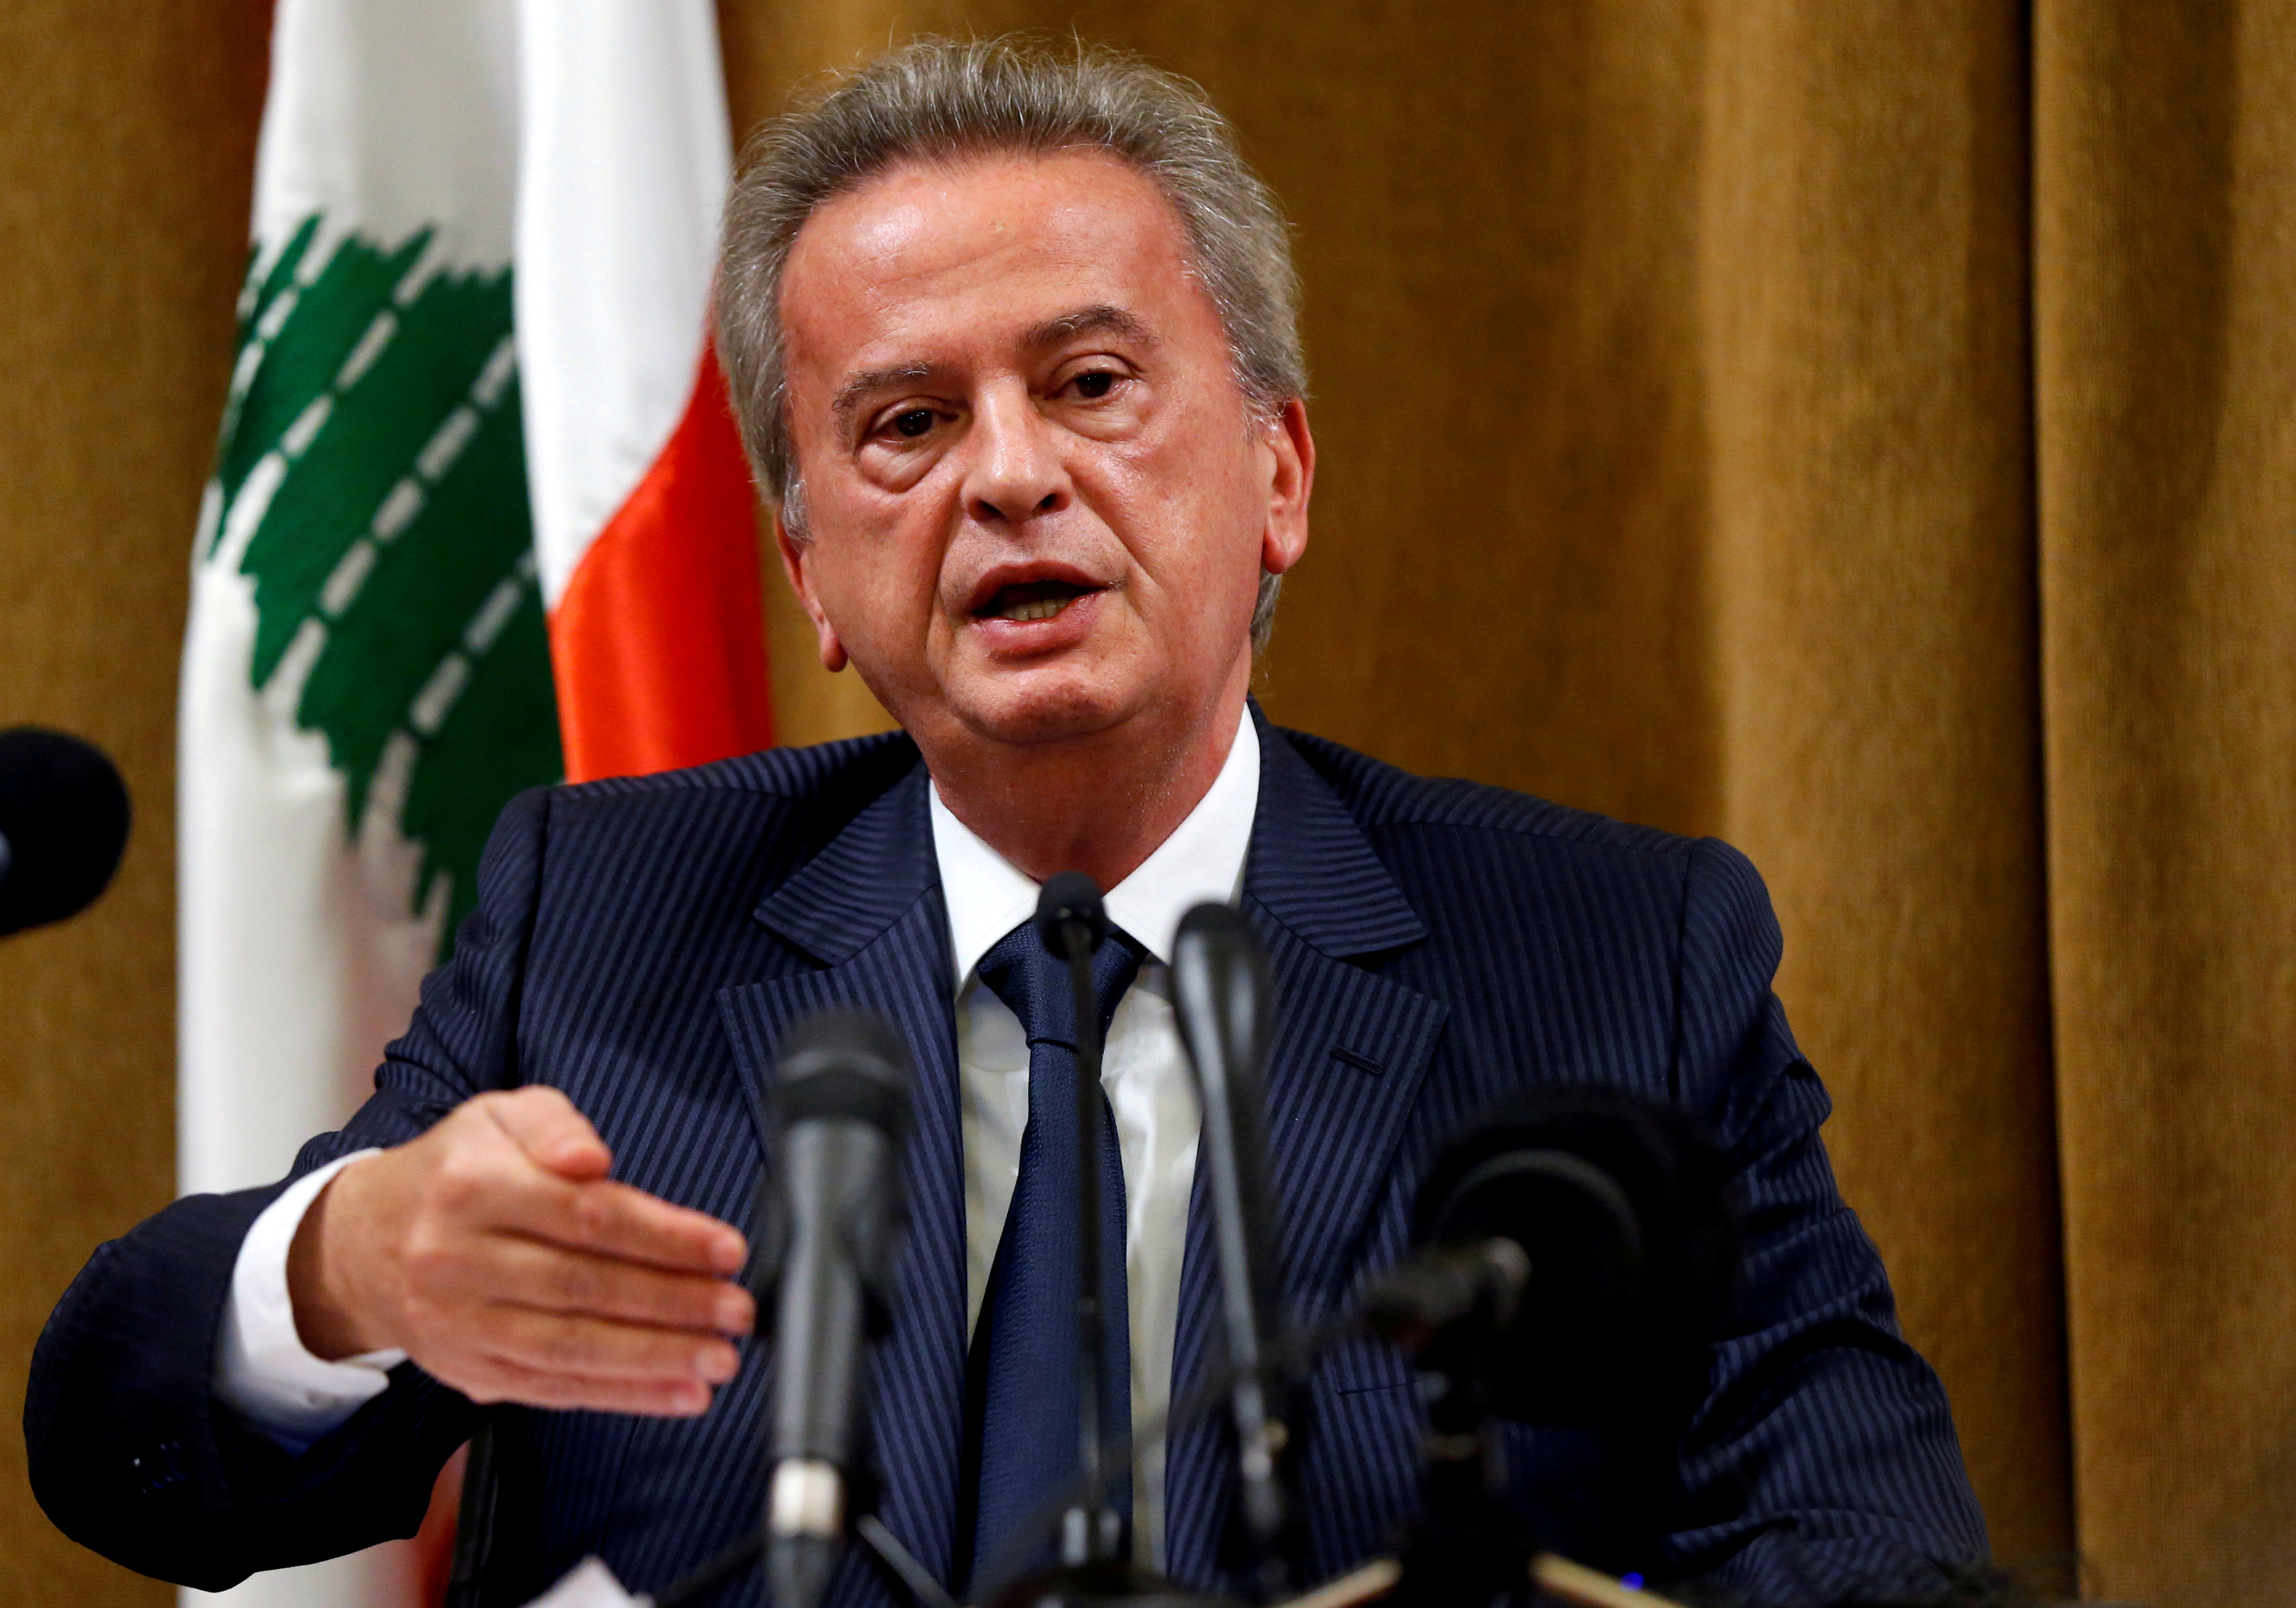 Lebanon's Central Bank Governor Riad Salameh speaks during a news conference at Central Bank in Beirut, Lebanon, November 11, 2019. REUTERS/Mohamed Azakir/File Photo